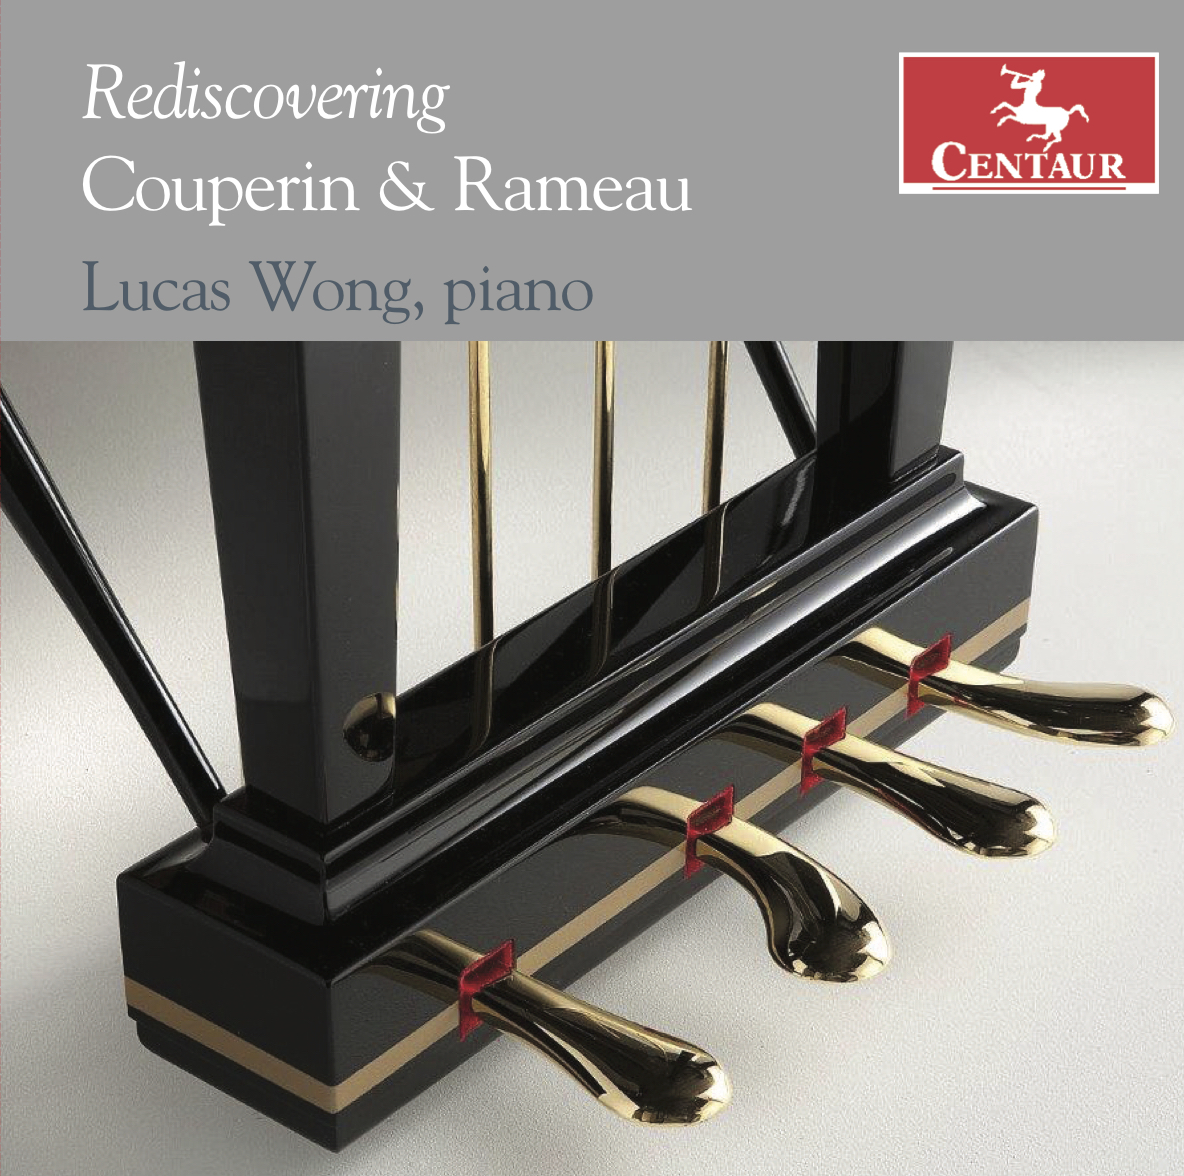 Rediscovering Couperin and Rameau